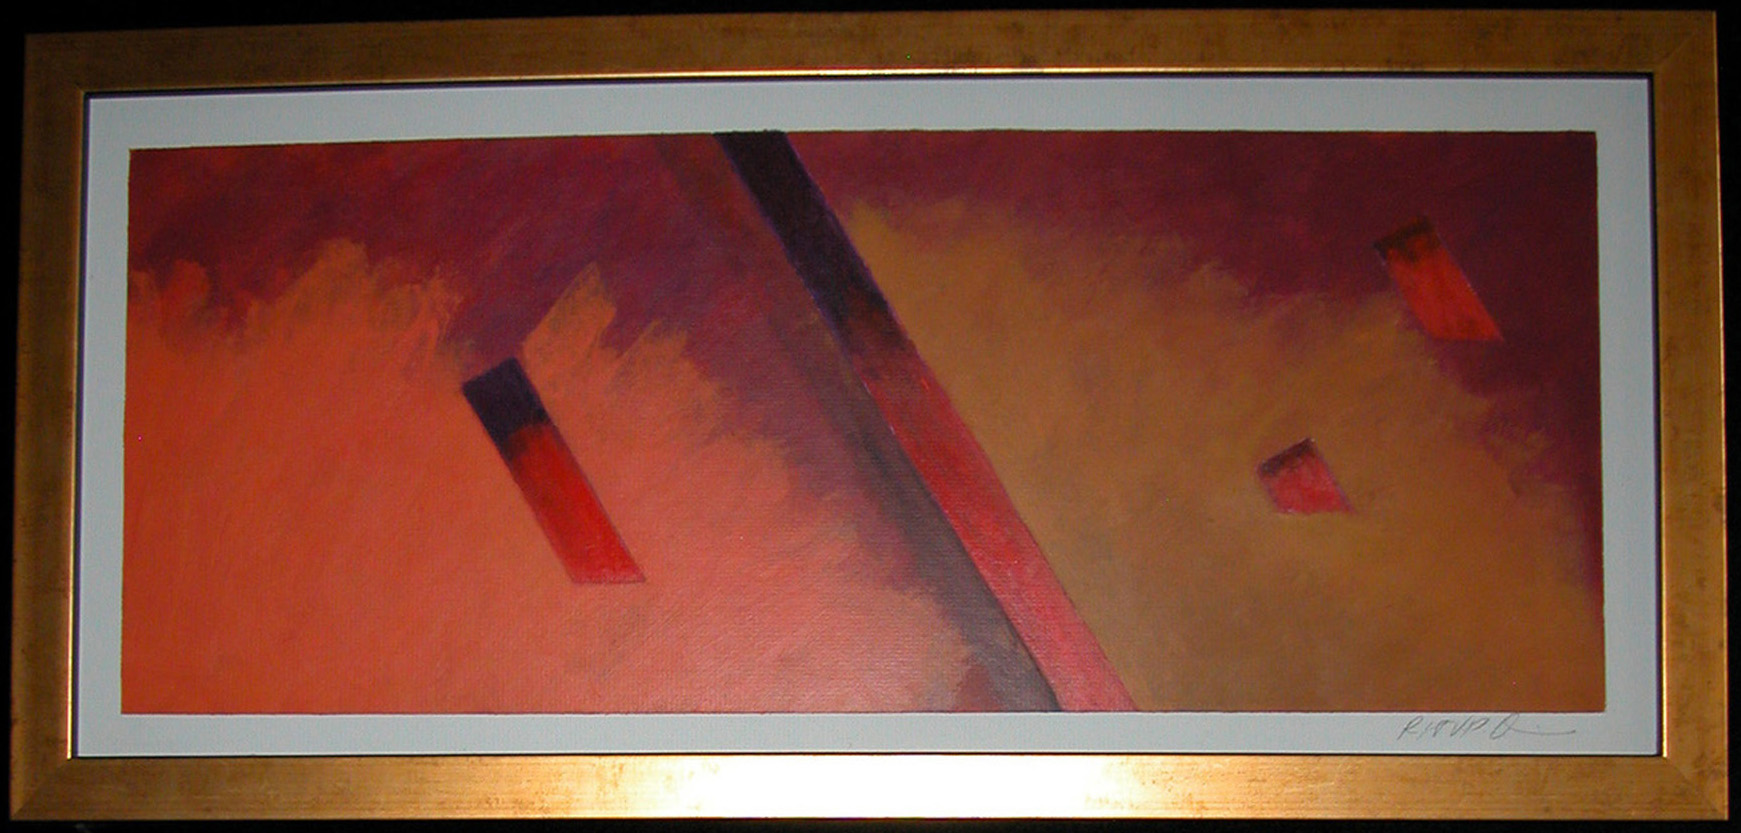 Robert Davis; Unaware, 1979, Original Painting Acrylic, 27 x 13 inches. Artwork description: 241 Abstract painting on illustration board explores my interest in color and texture, and how they influence one another.  Two fields of smokey red, ocher and orange are bisected by a diagonal stripe of red fading to black.  Three smaller red to black shapes tie the two fields ...